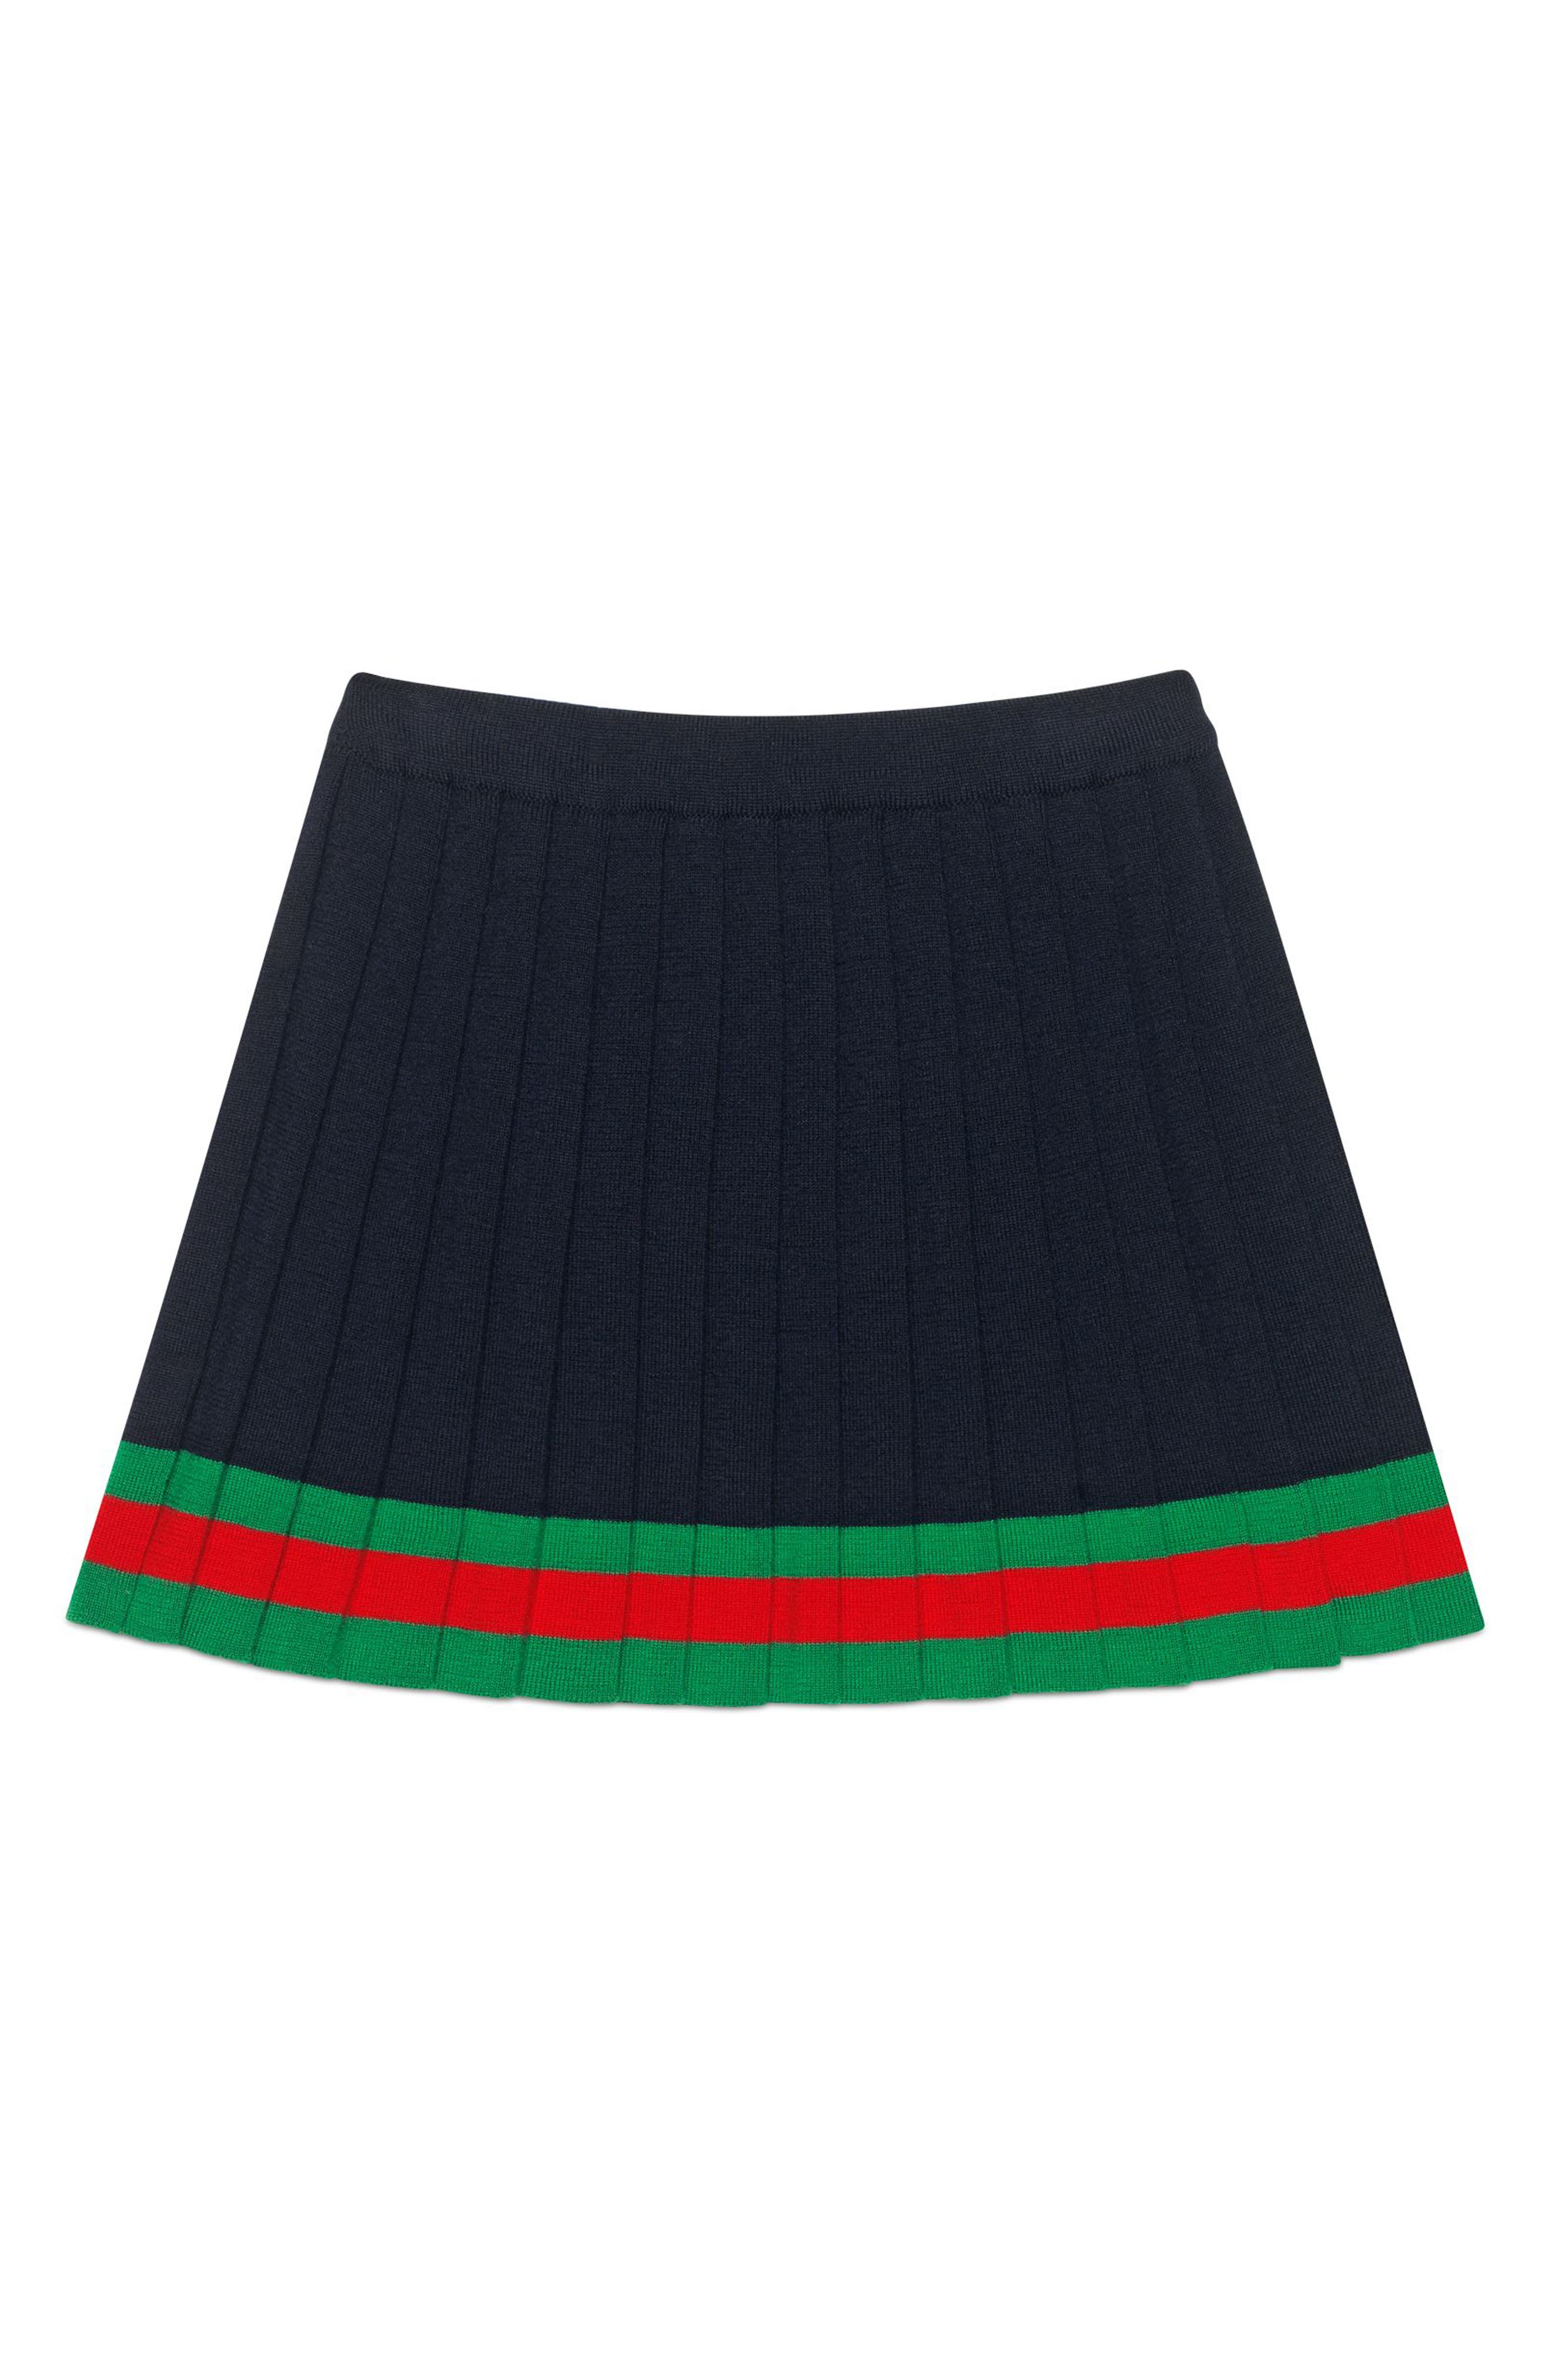 Pleated Wool Knit Skirt,                             Alternate thumbnail 2, color,                             NAVY/ SHAMROCK/ L.RED